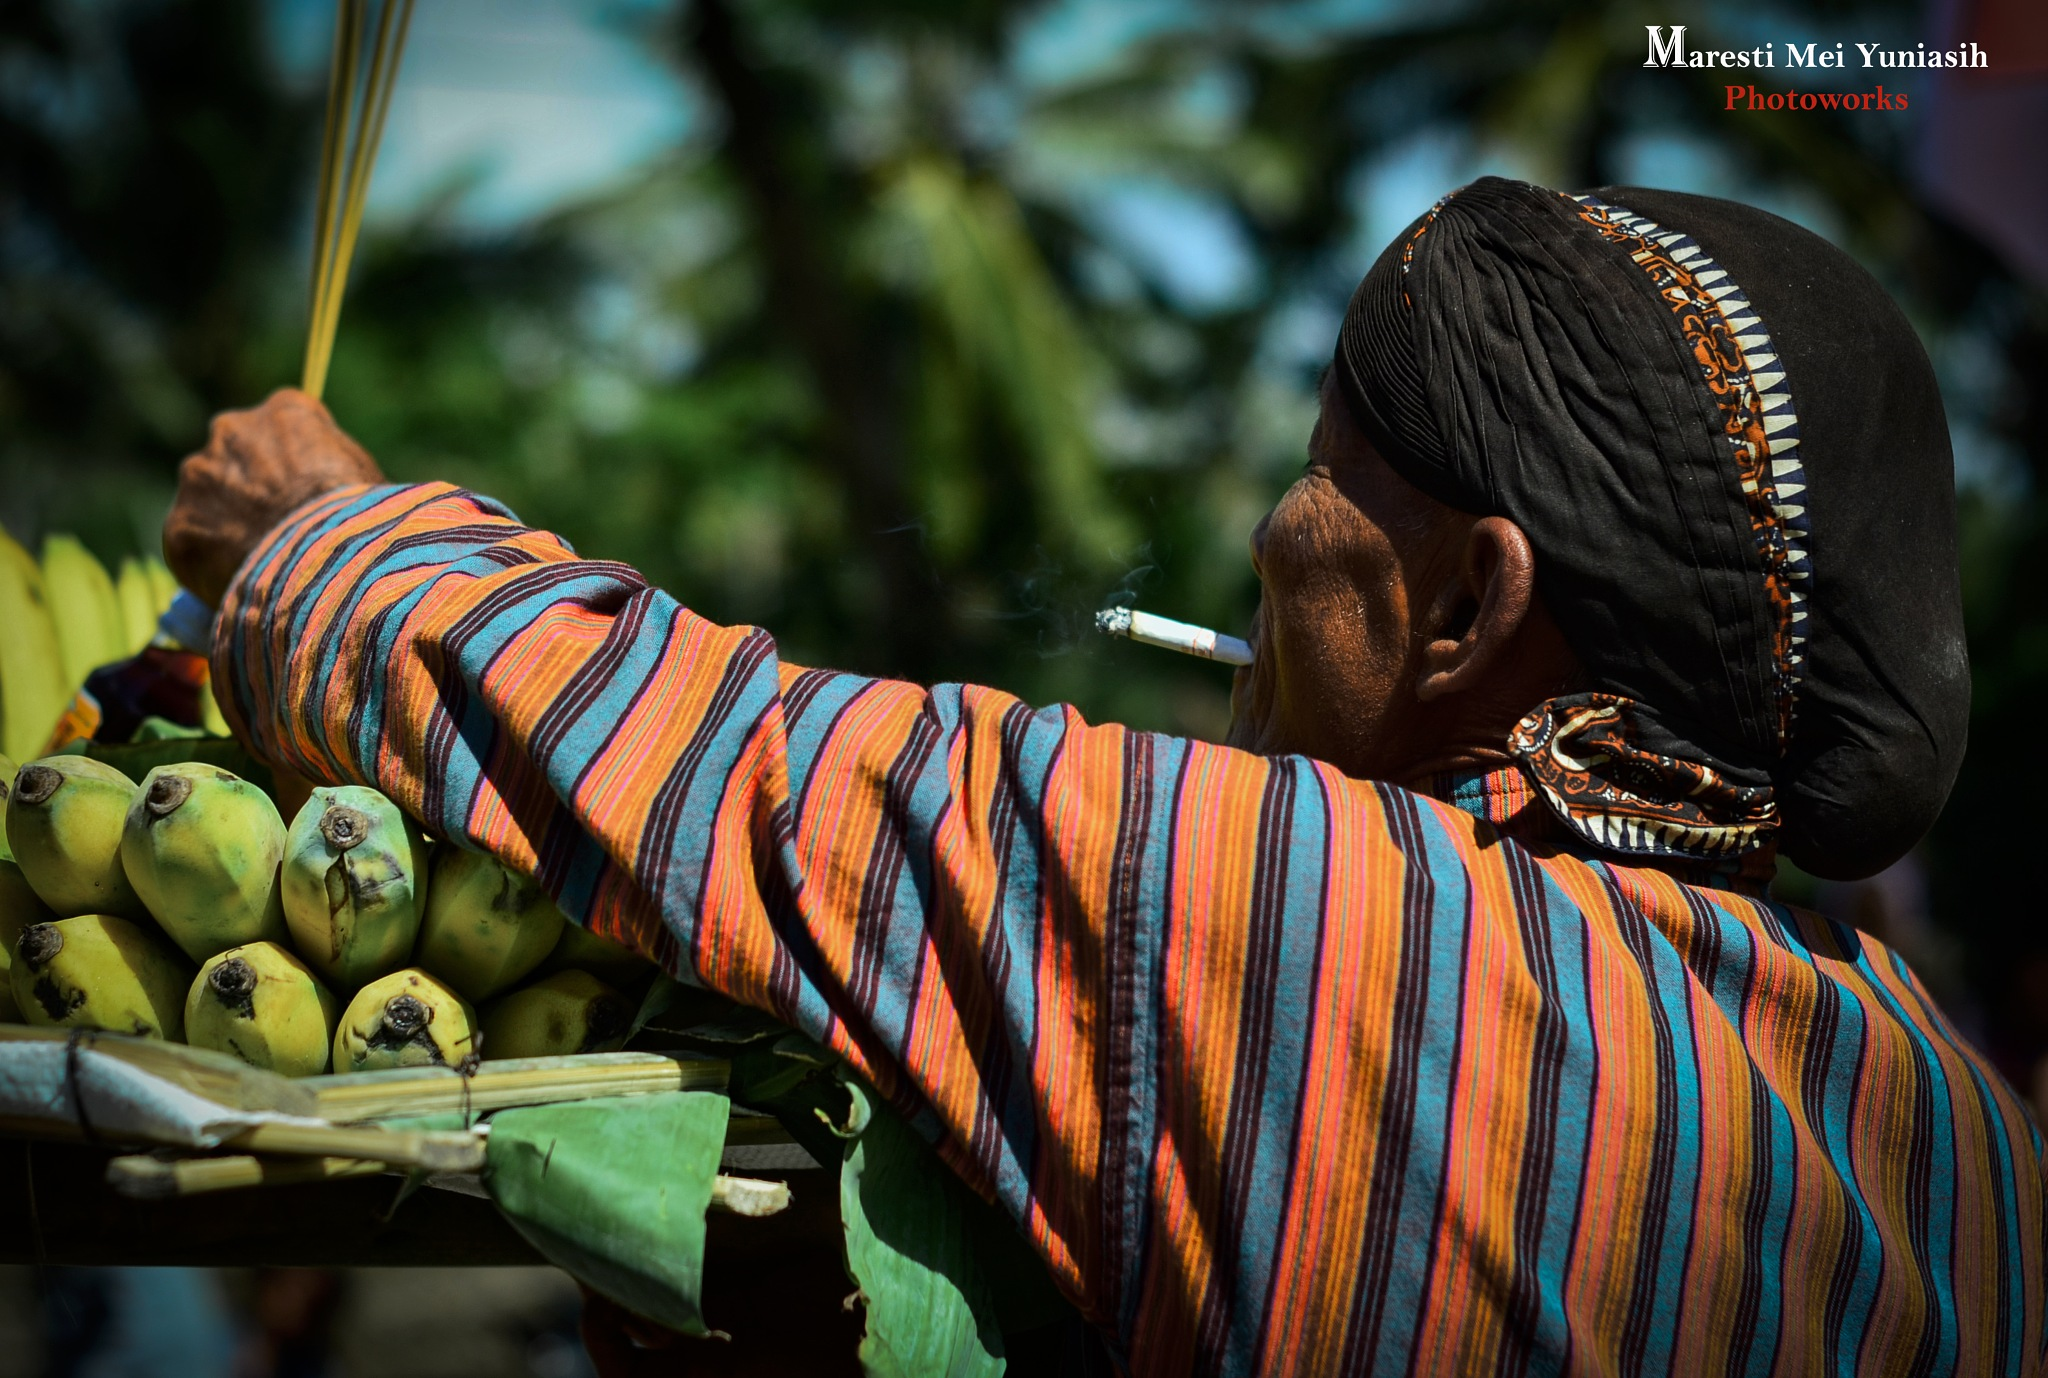 People Of Java Indonesia by Maresti Mei Yuniasih